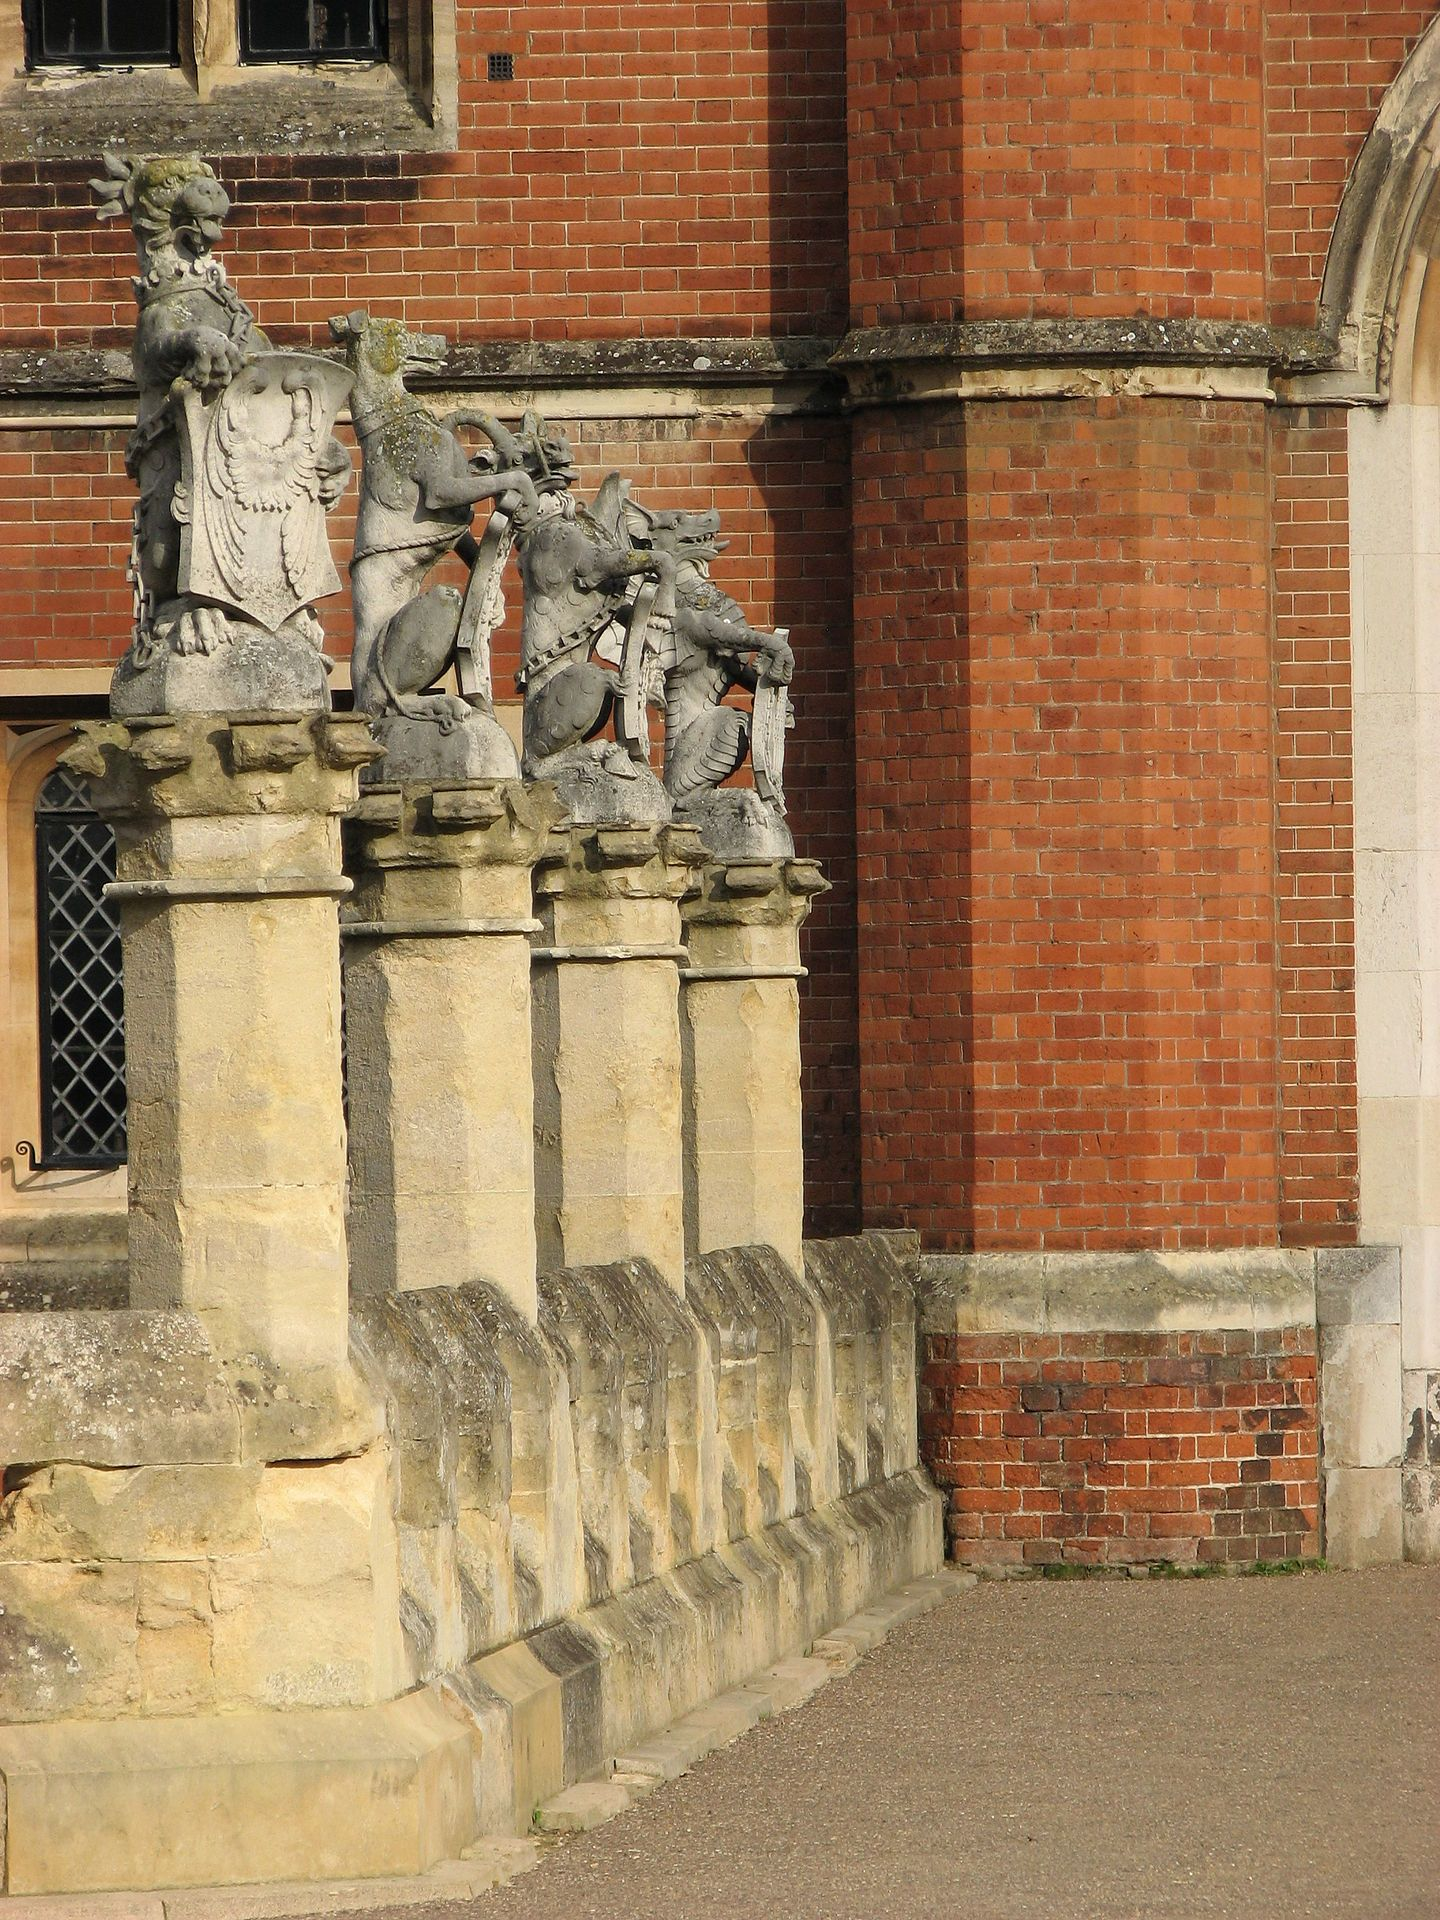 The King's Beasts. There are ten statues of heraldic